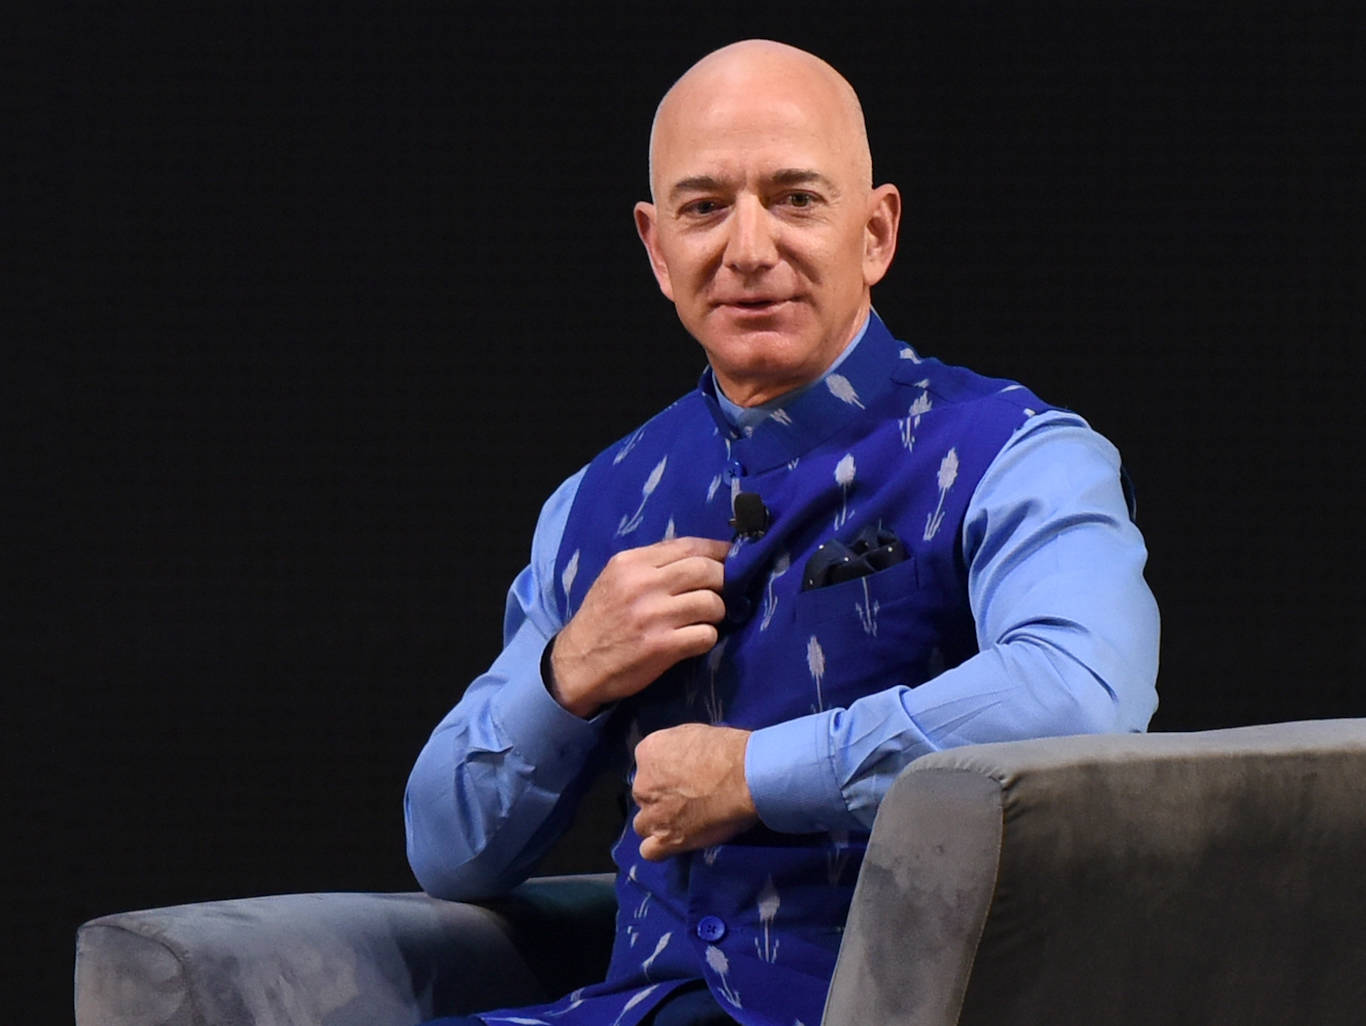 Jeff Bezos Phone Hack Shows Hackers Are Winning In The Arms Race Between Governments And Tech Firms According To A Cybersecurity Expert Business Insider India